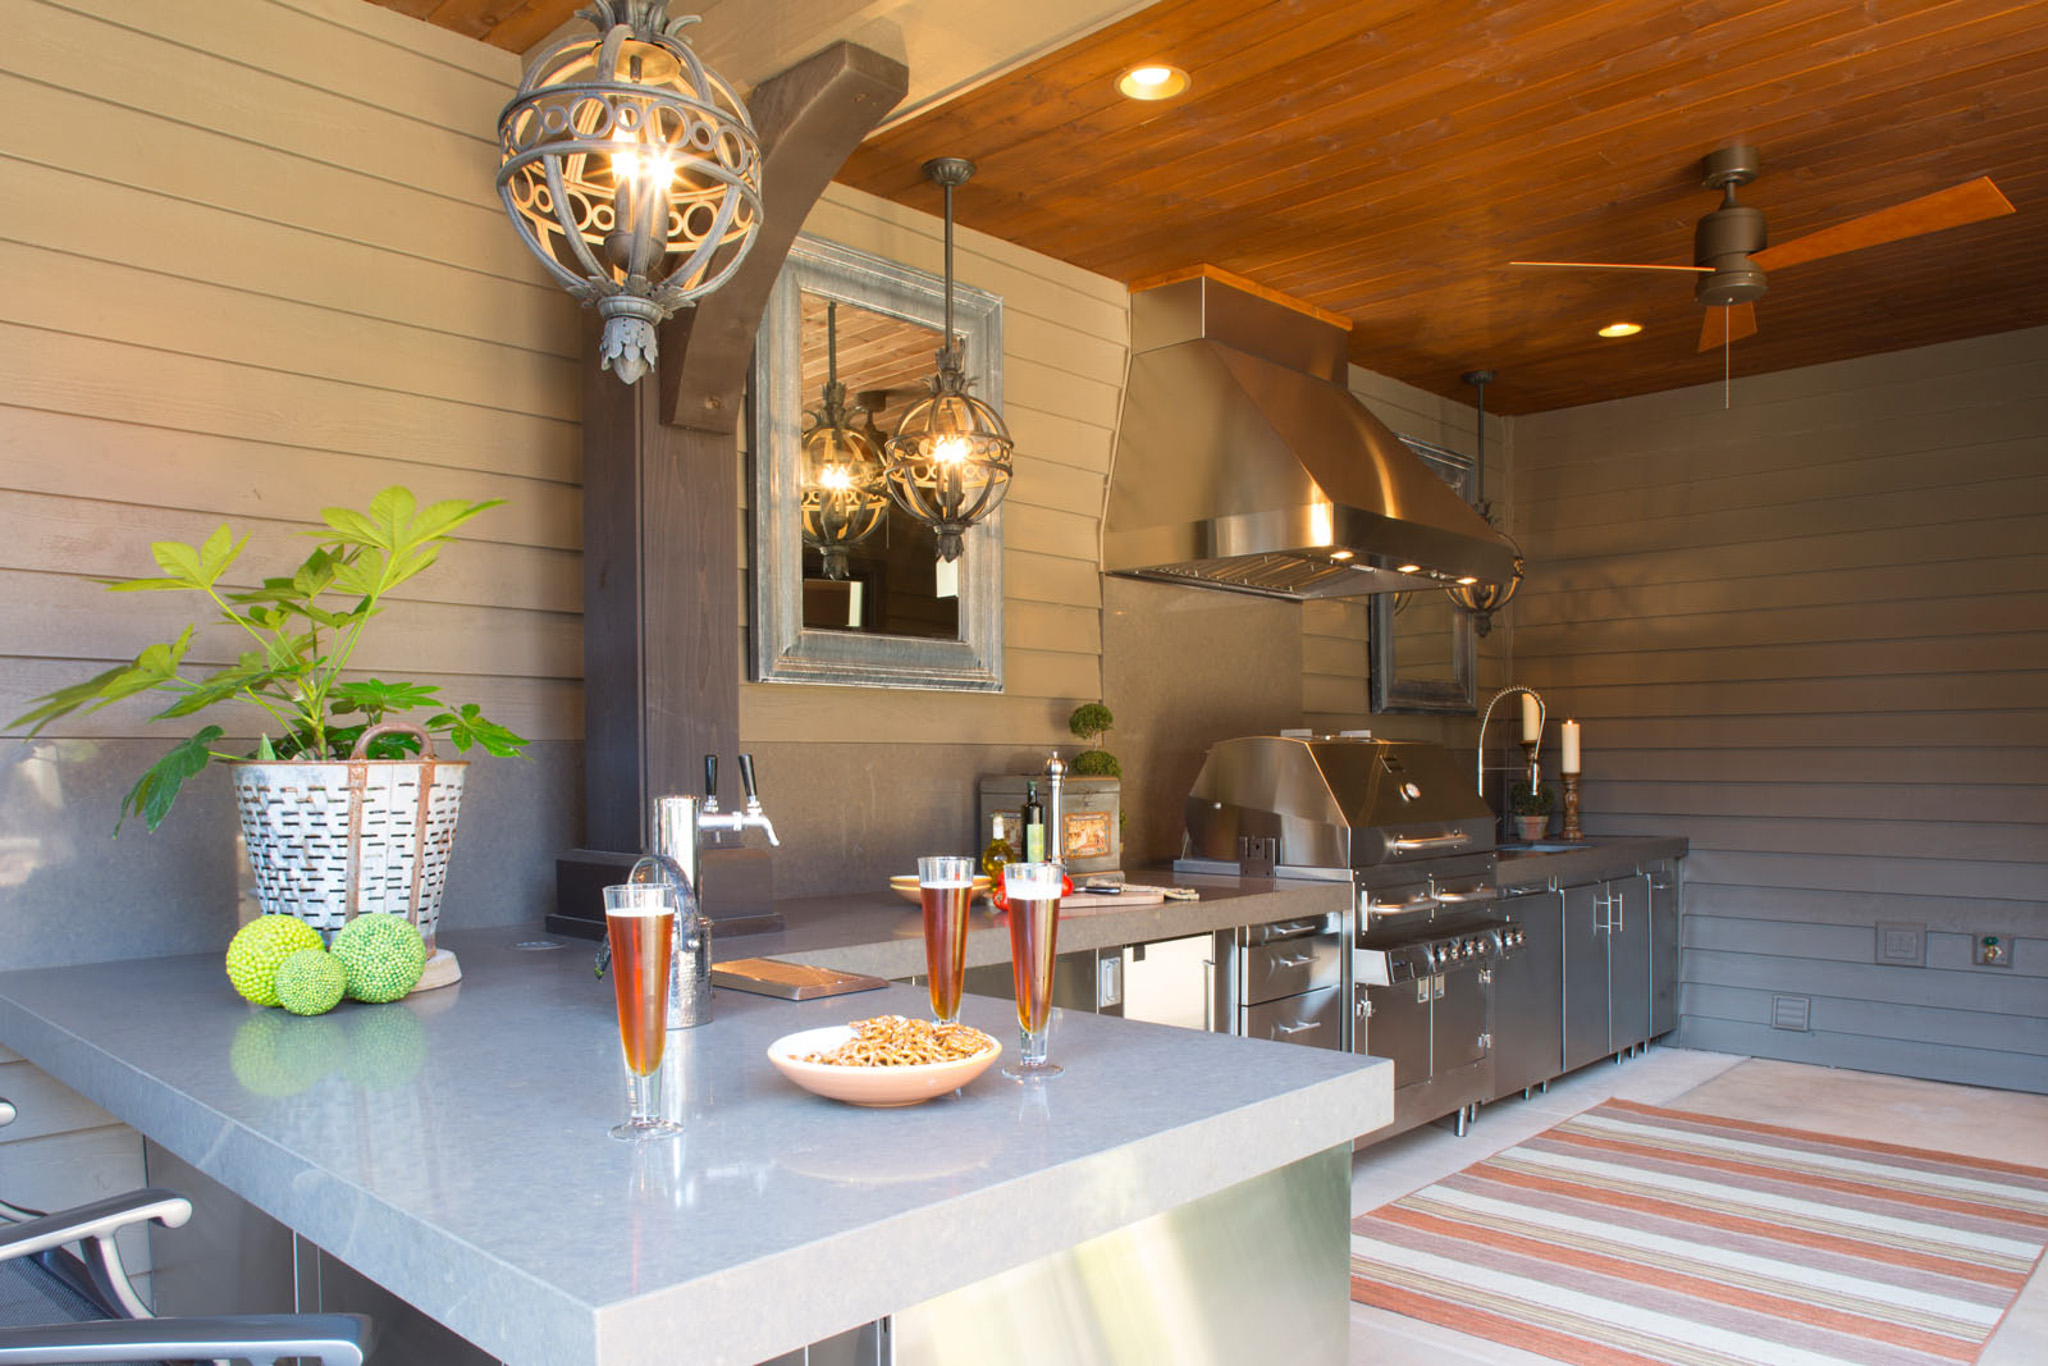 Lord Interior Design - Pete's Mountain Outdoor Kitchen and Patio Project-11.jpg